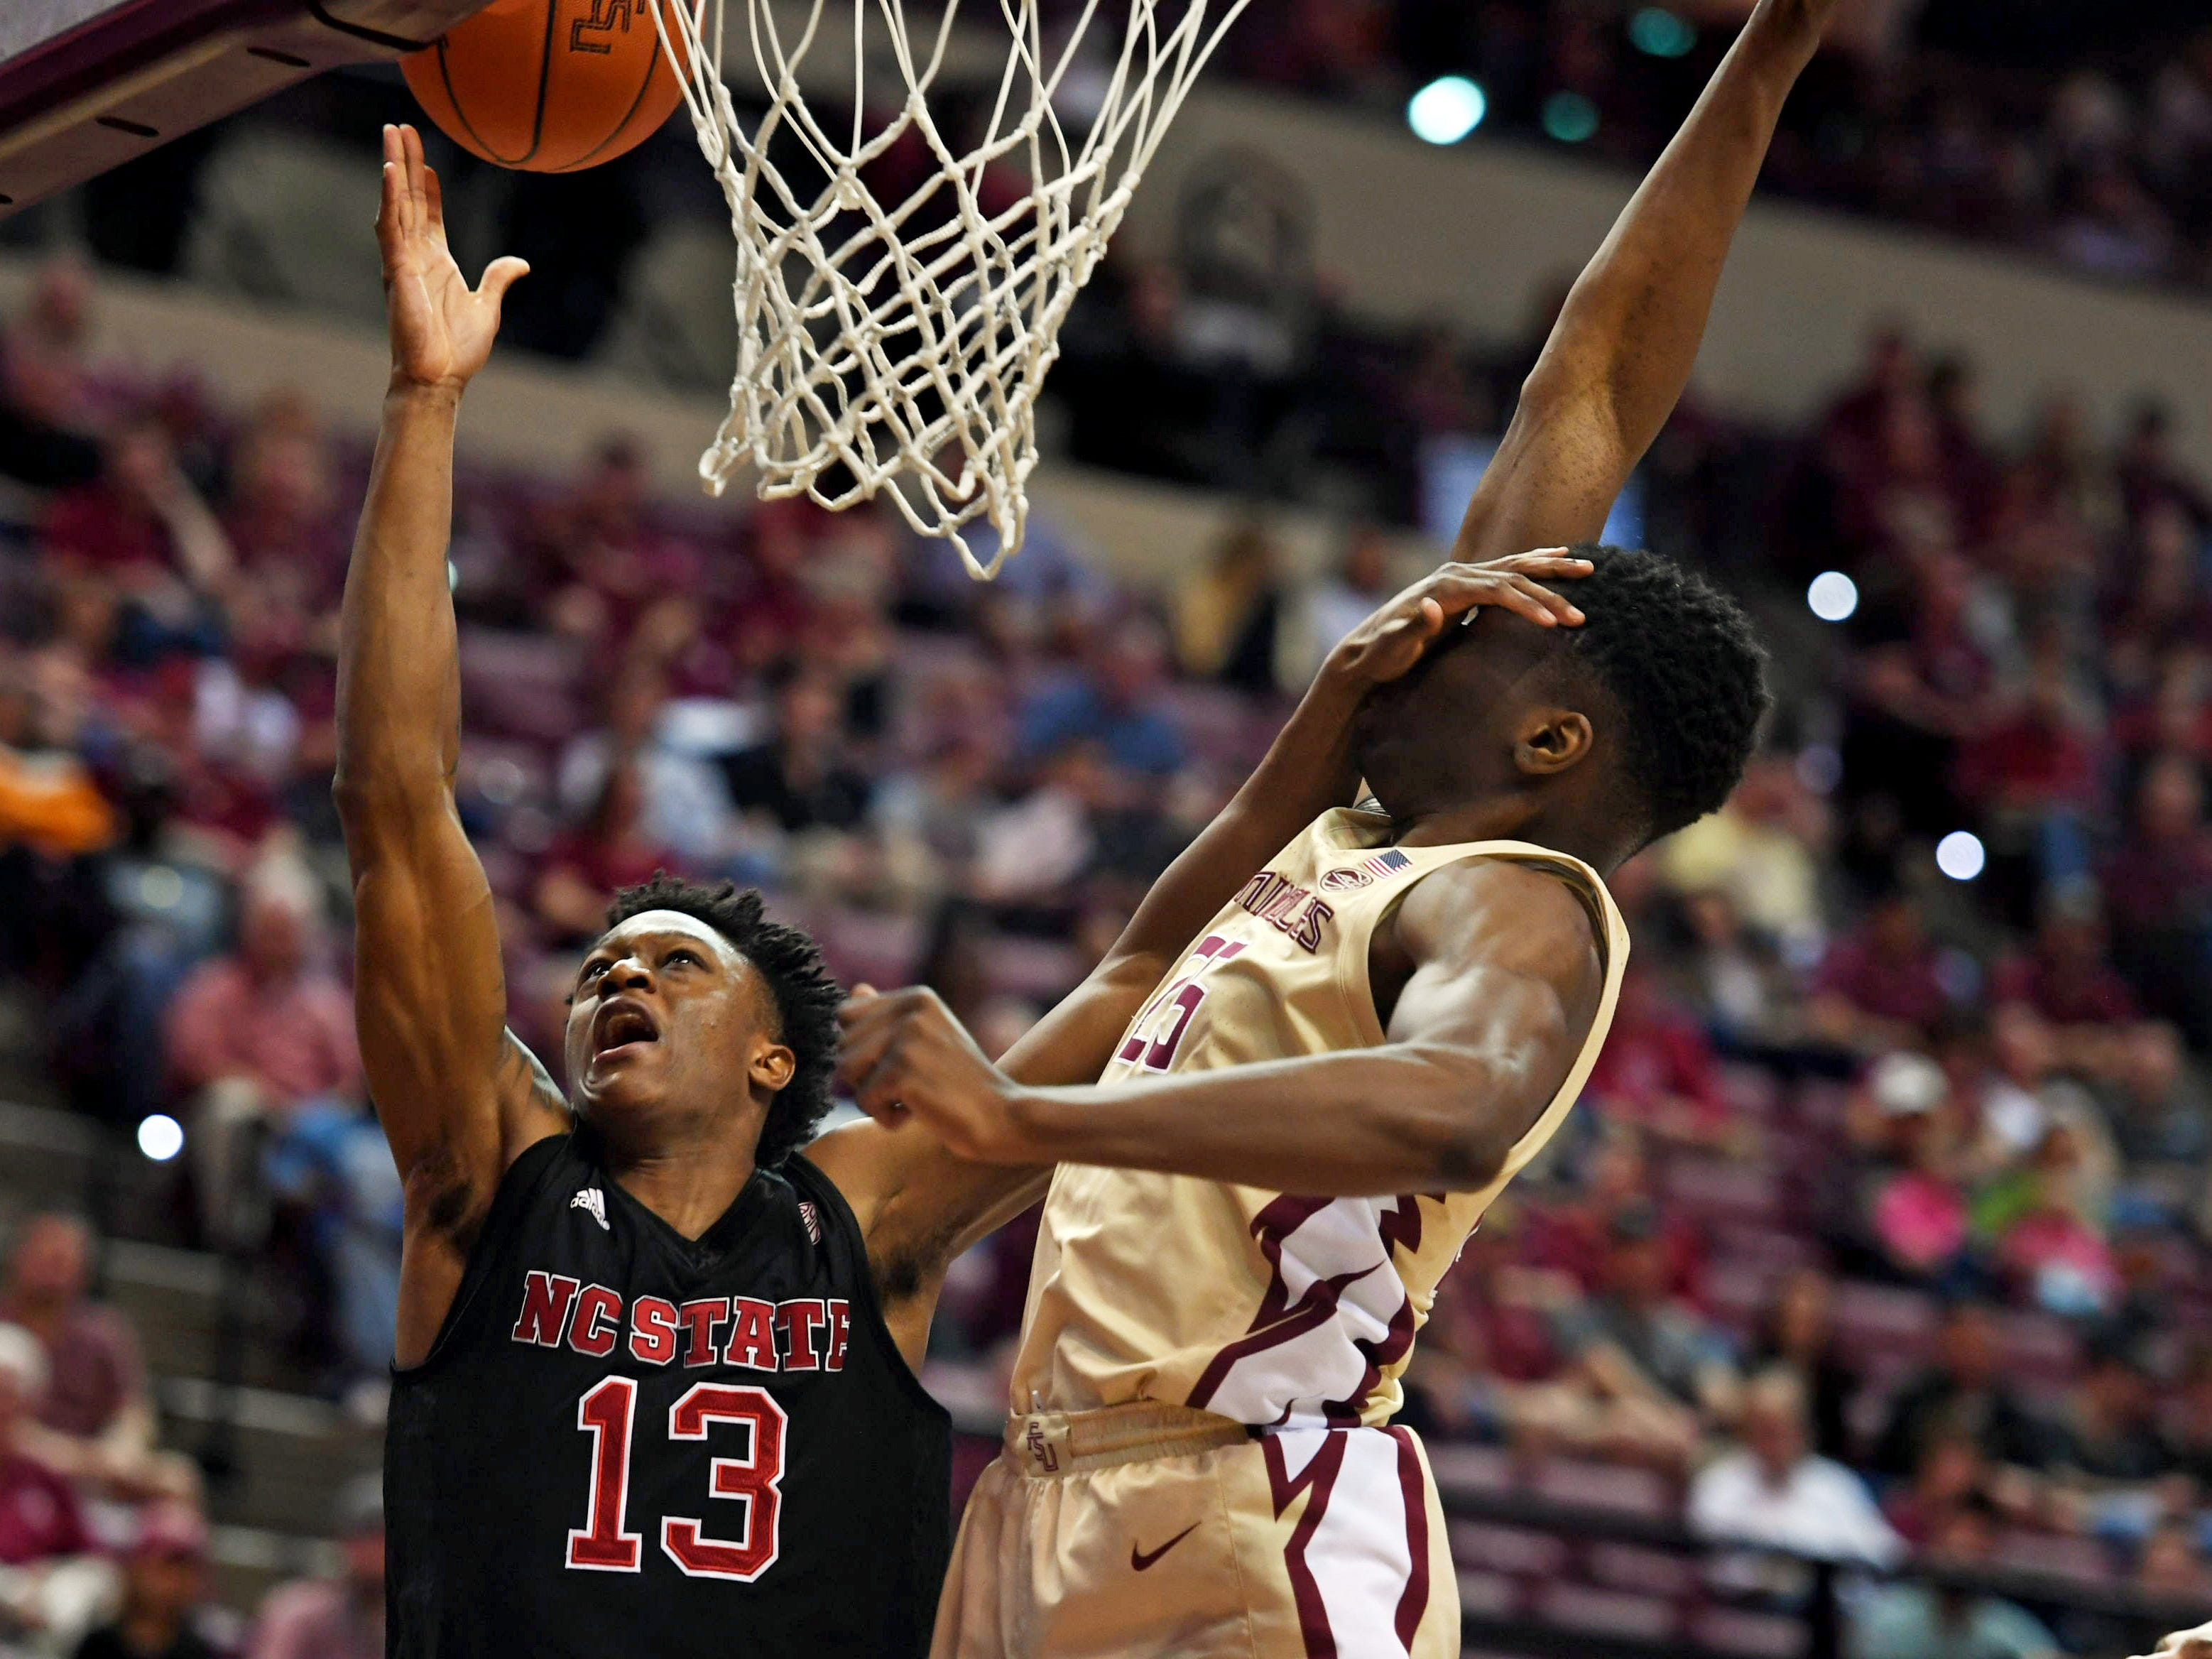 March 2: Florida State forward Mfiondu Kabengele gets a hand in his face as he defends against North Carolina State guard CJ Bryce.